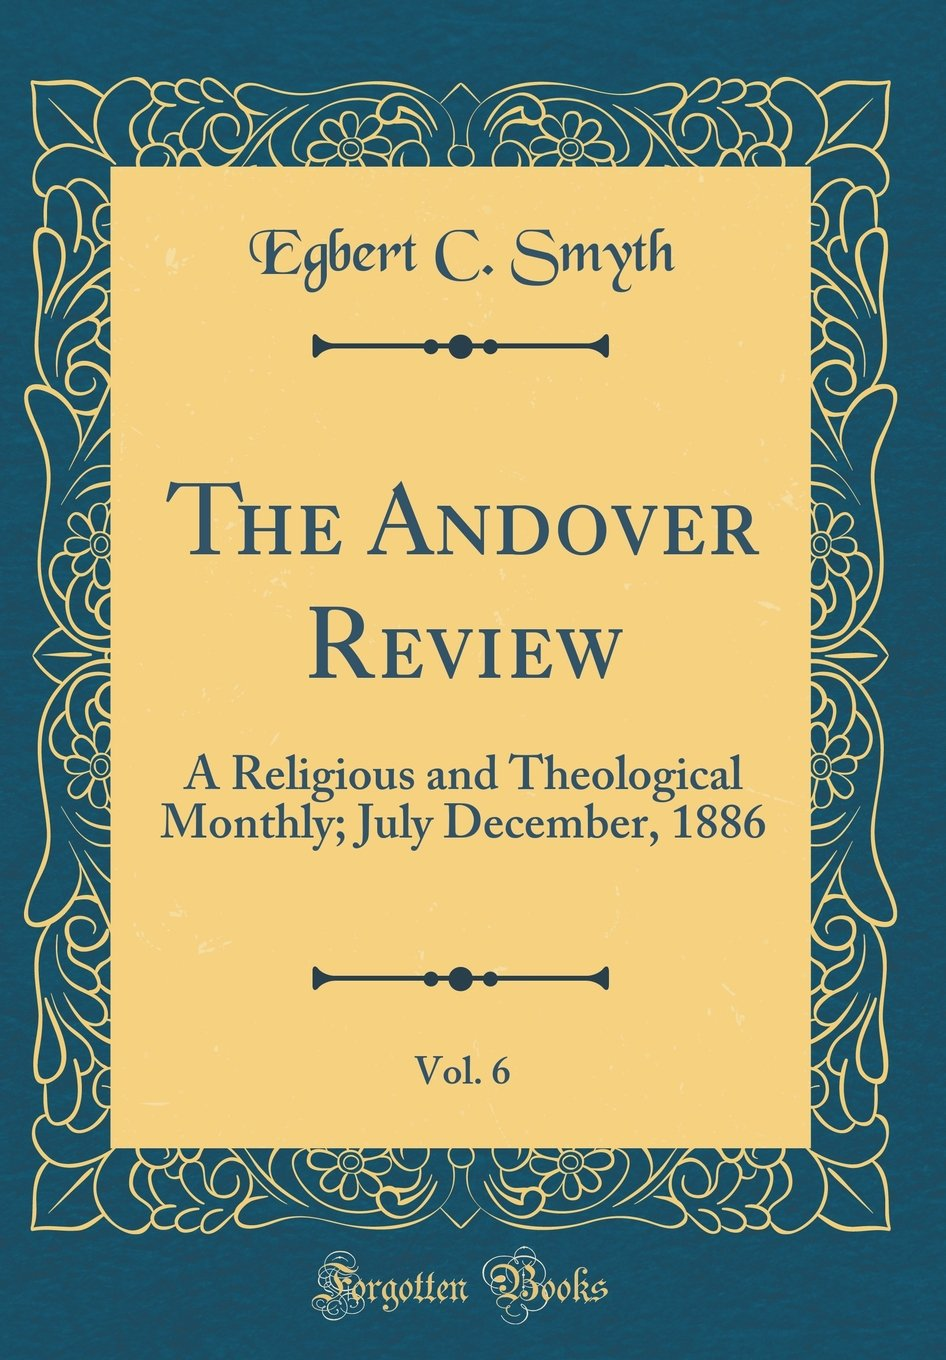 The Andover Review, Vol. 6: A Religious and Theological Monthly; July December, 1886 (Classic Reprint) PDF